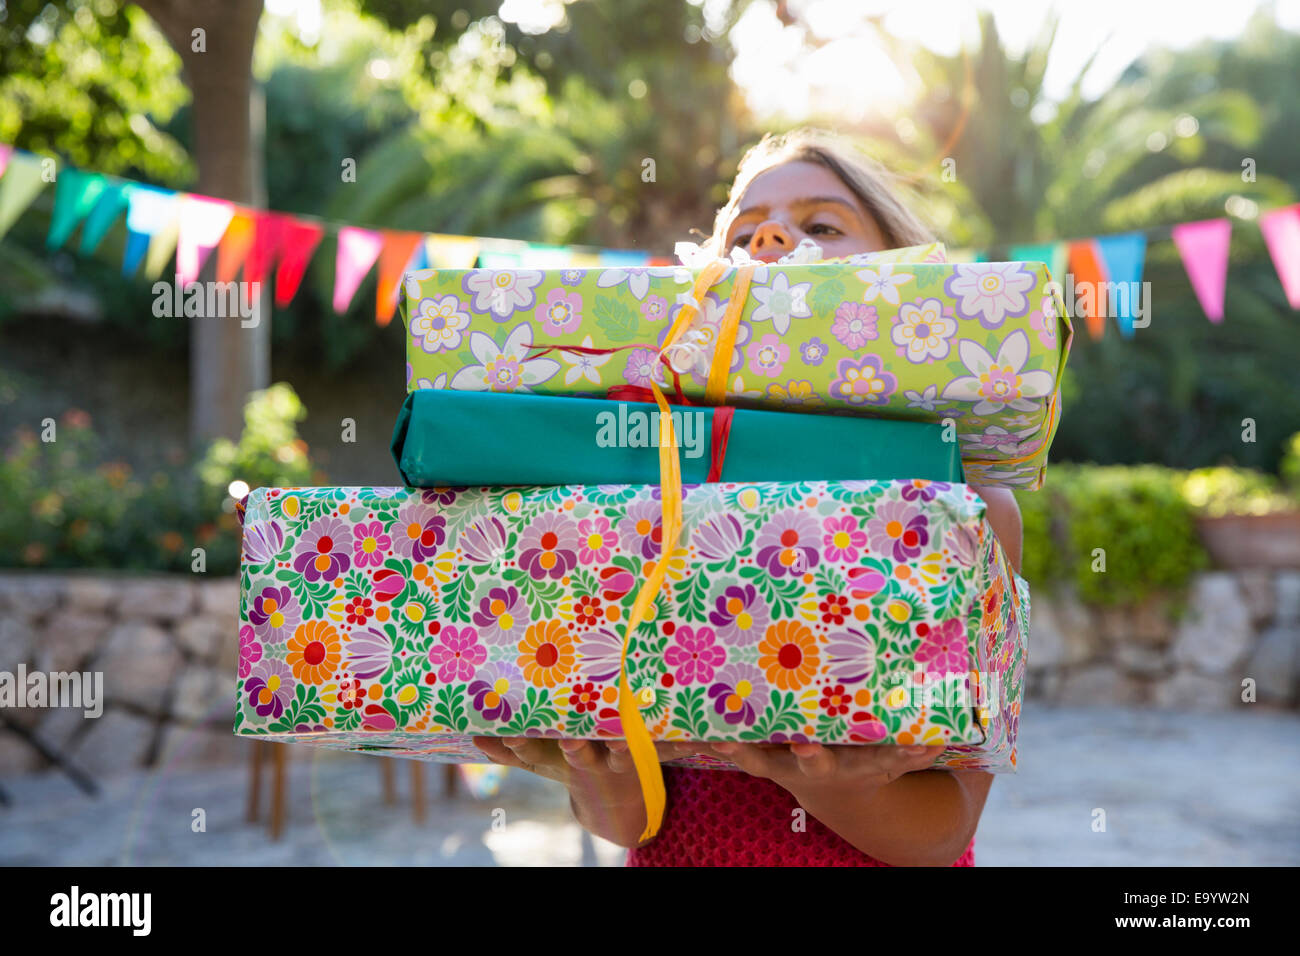 Girl carrying pile of birthday presents - Stock Image